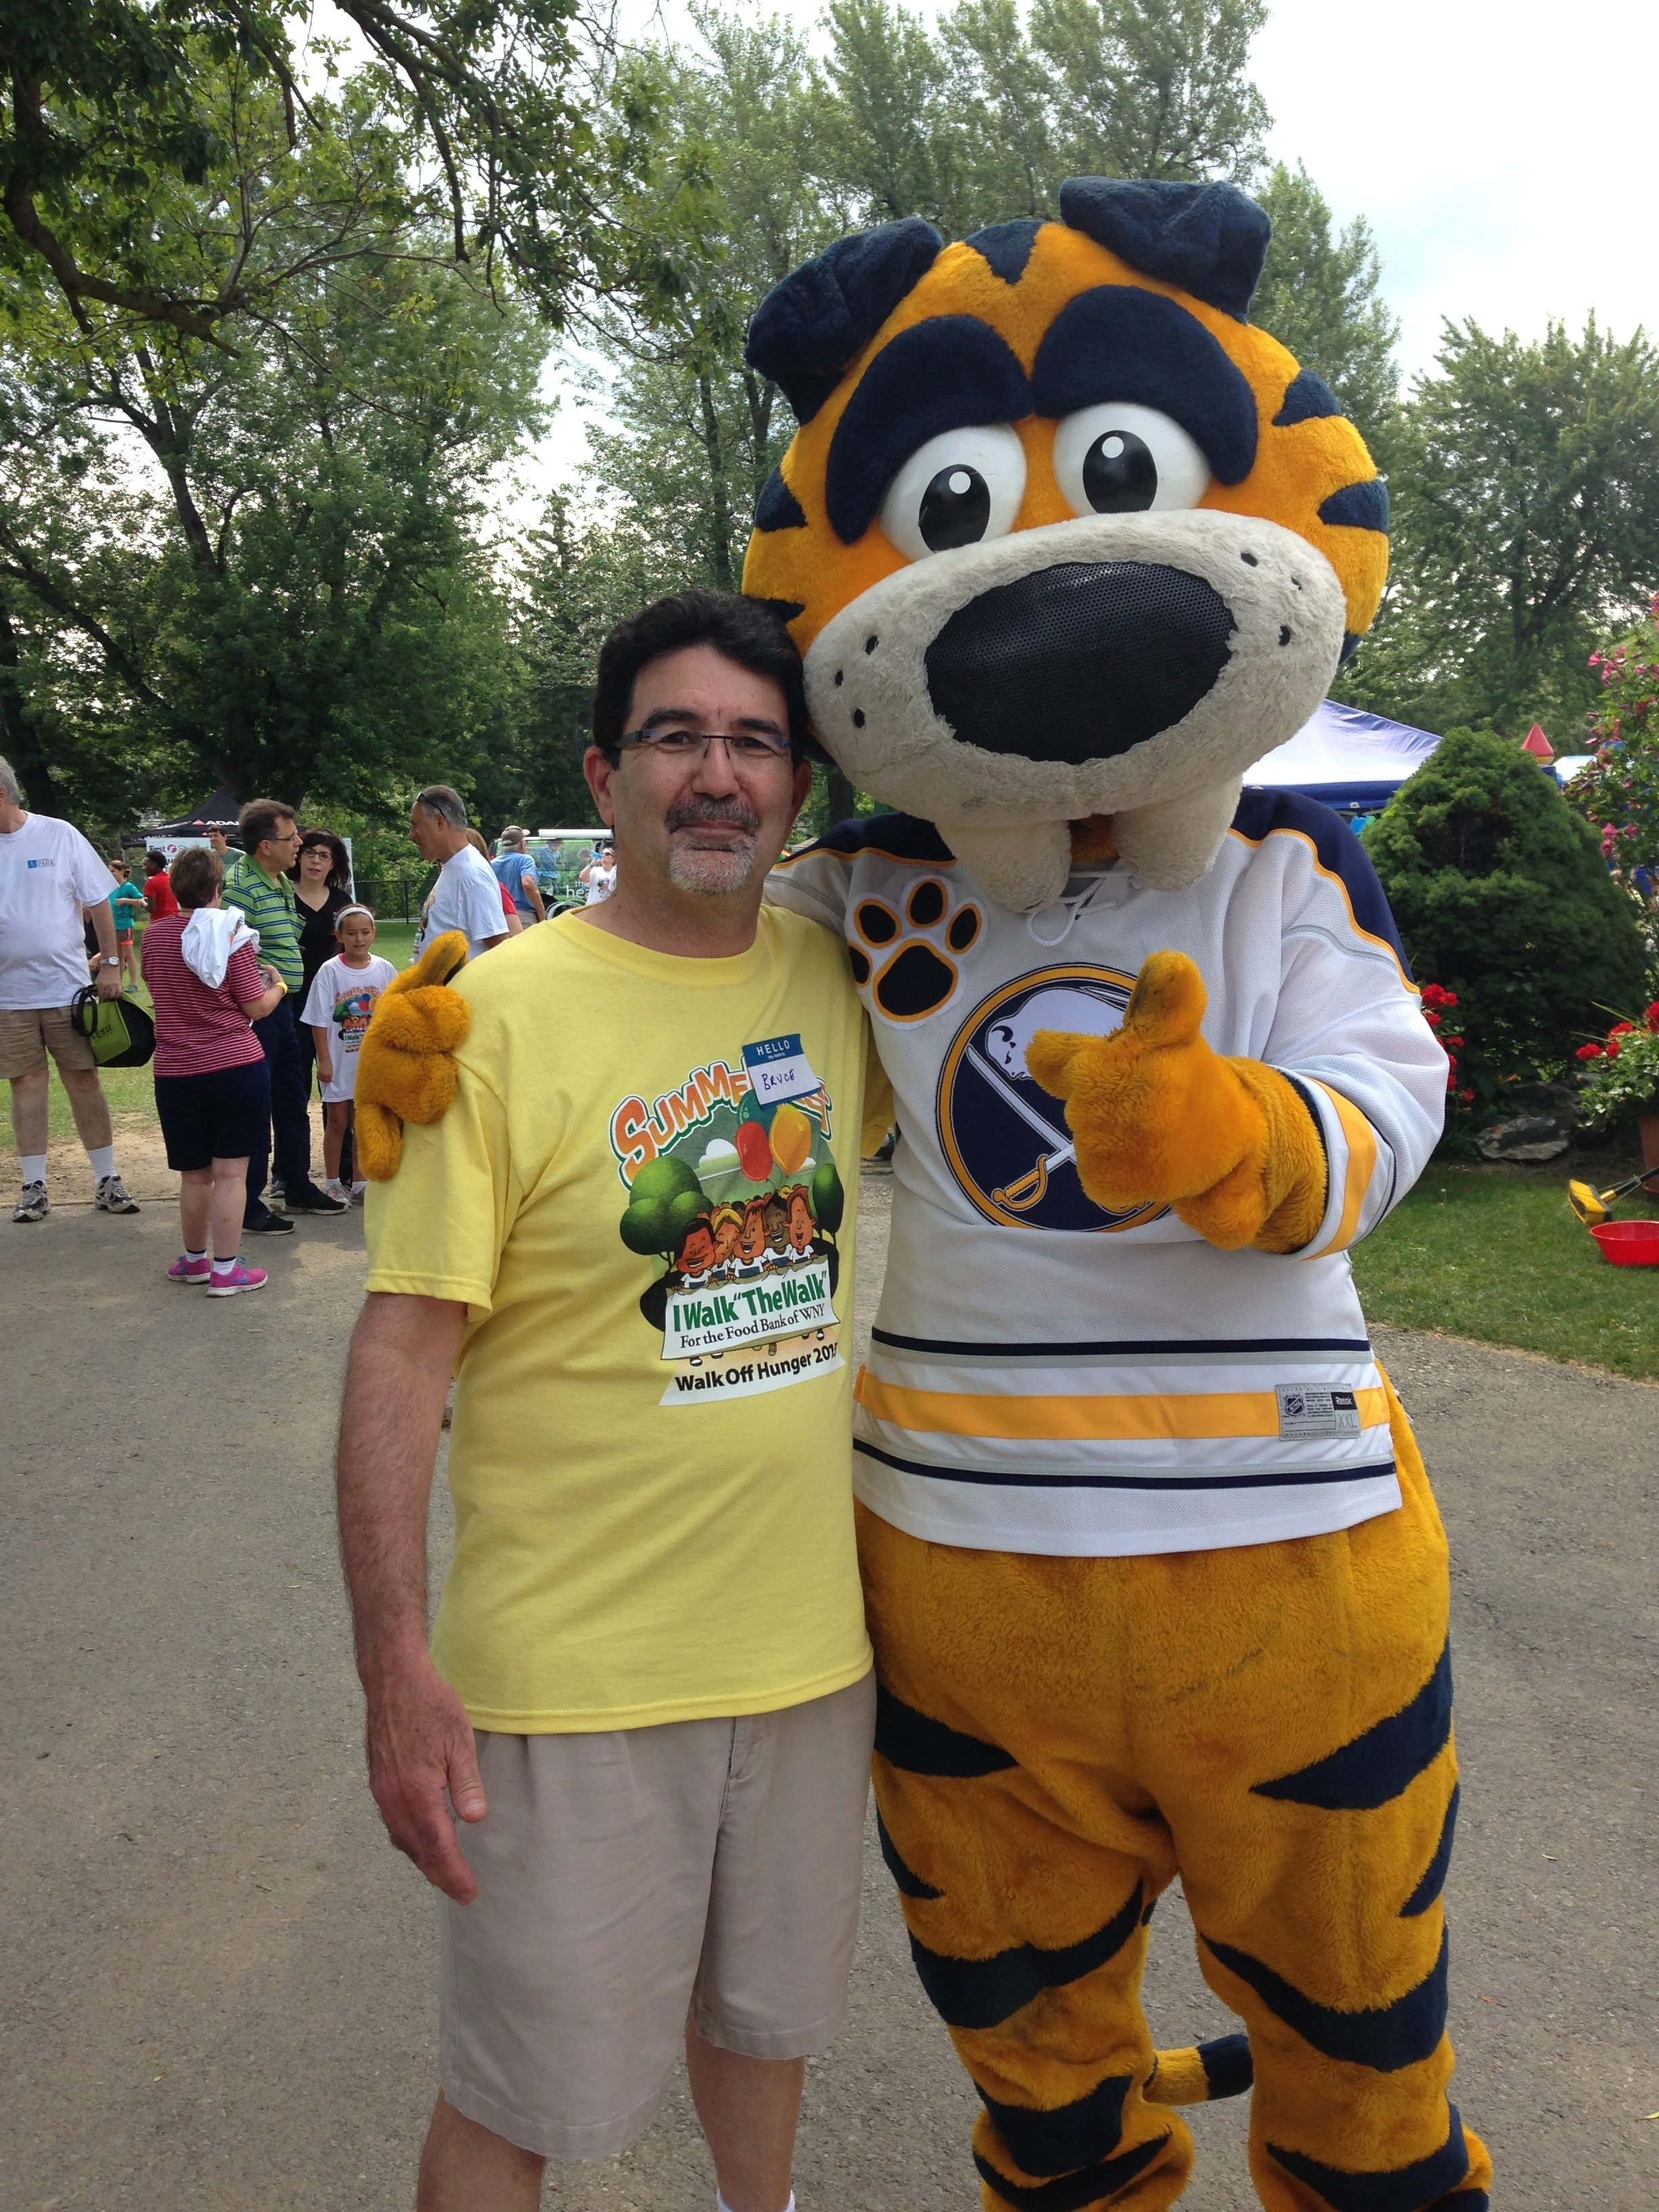 Bruce Corris, seen with Sabretooth, is a key organizer for Walk Off Hunger.